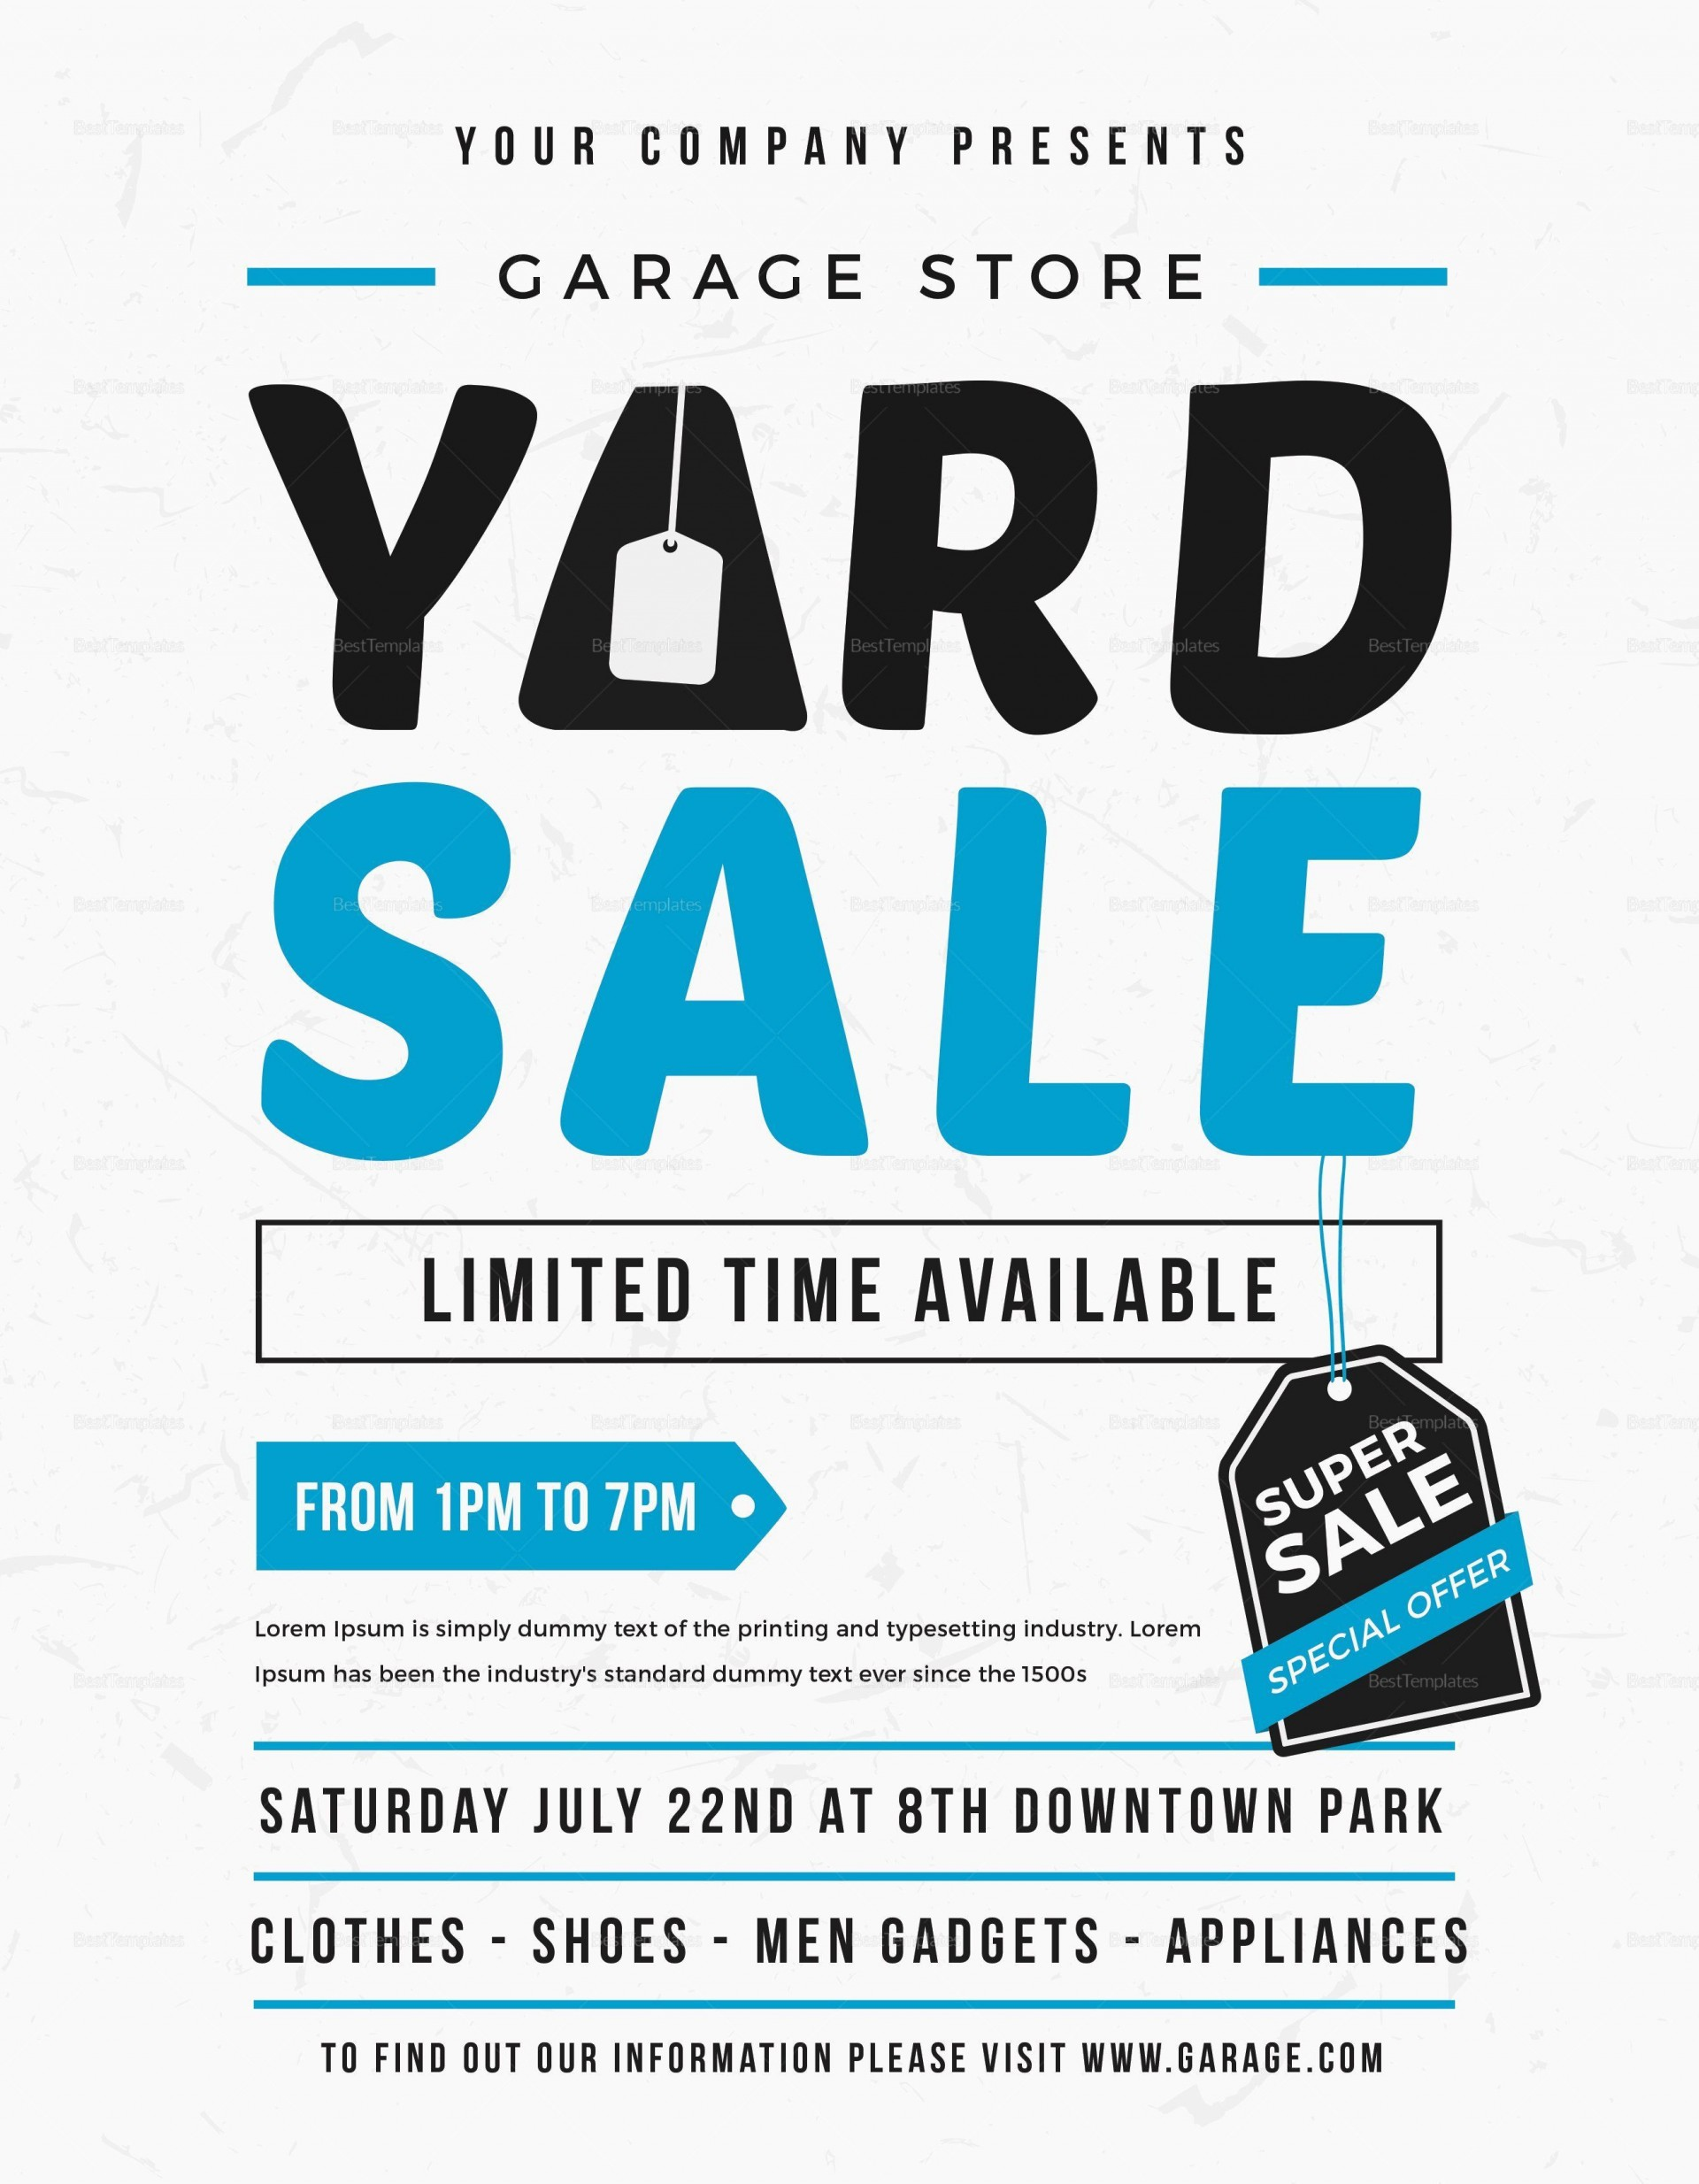 005 Impressive Yard Sale Flyer Template Design  Ad Sample Microsoft Word Garage Free1920